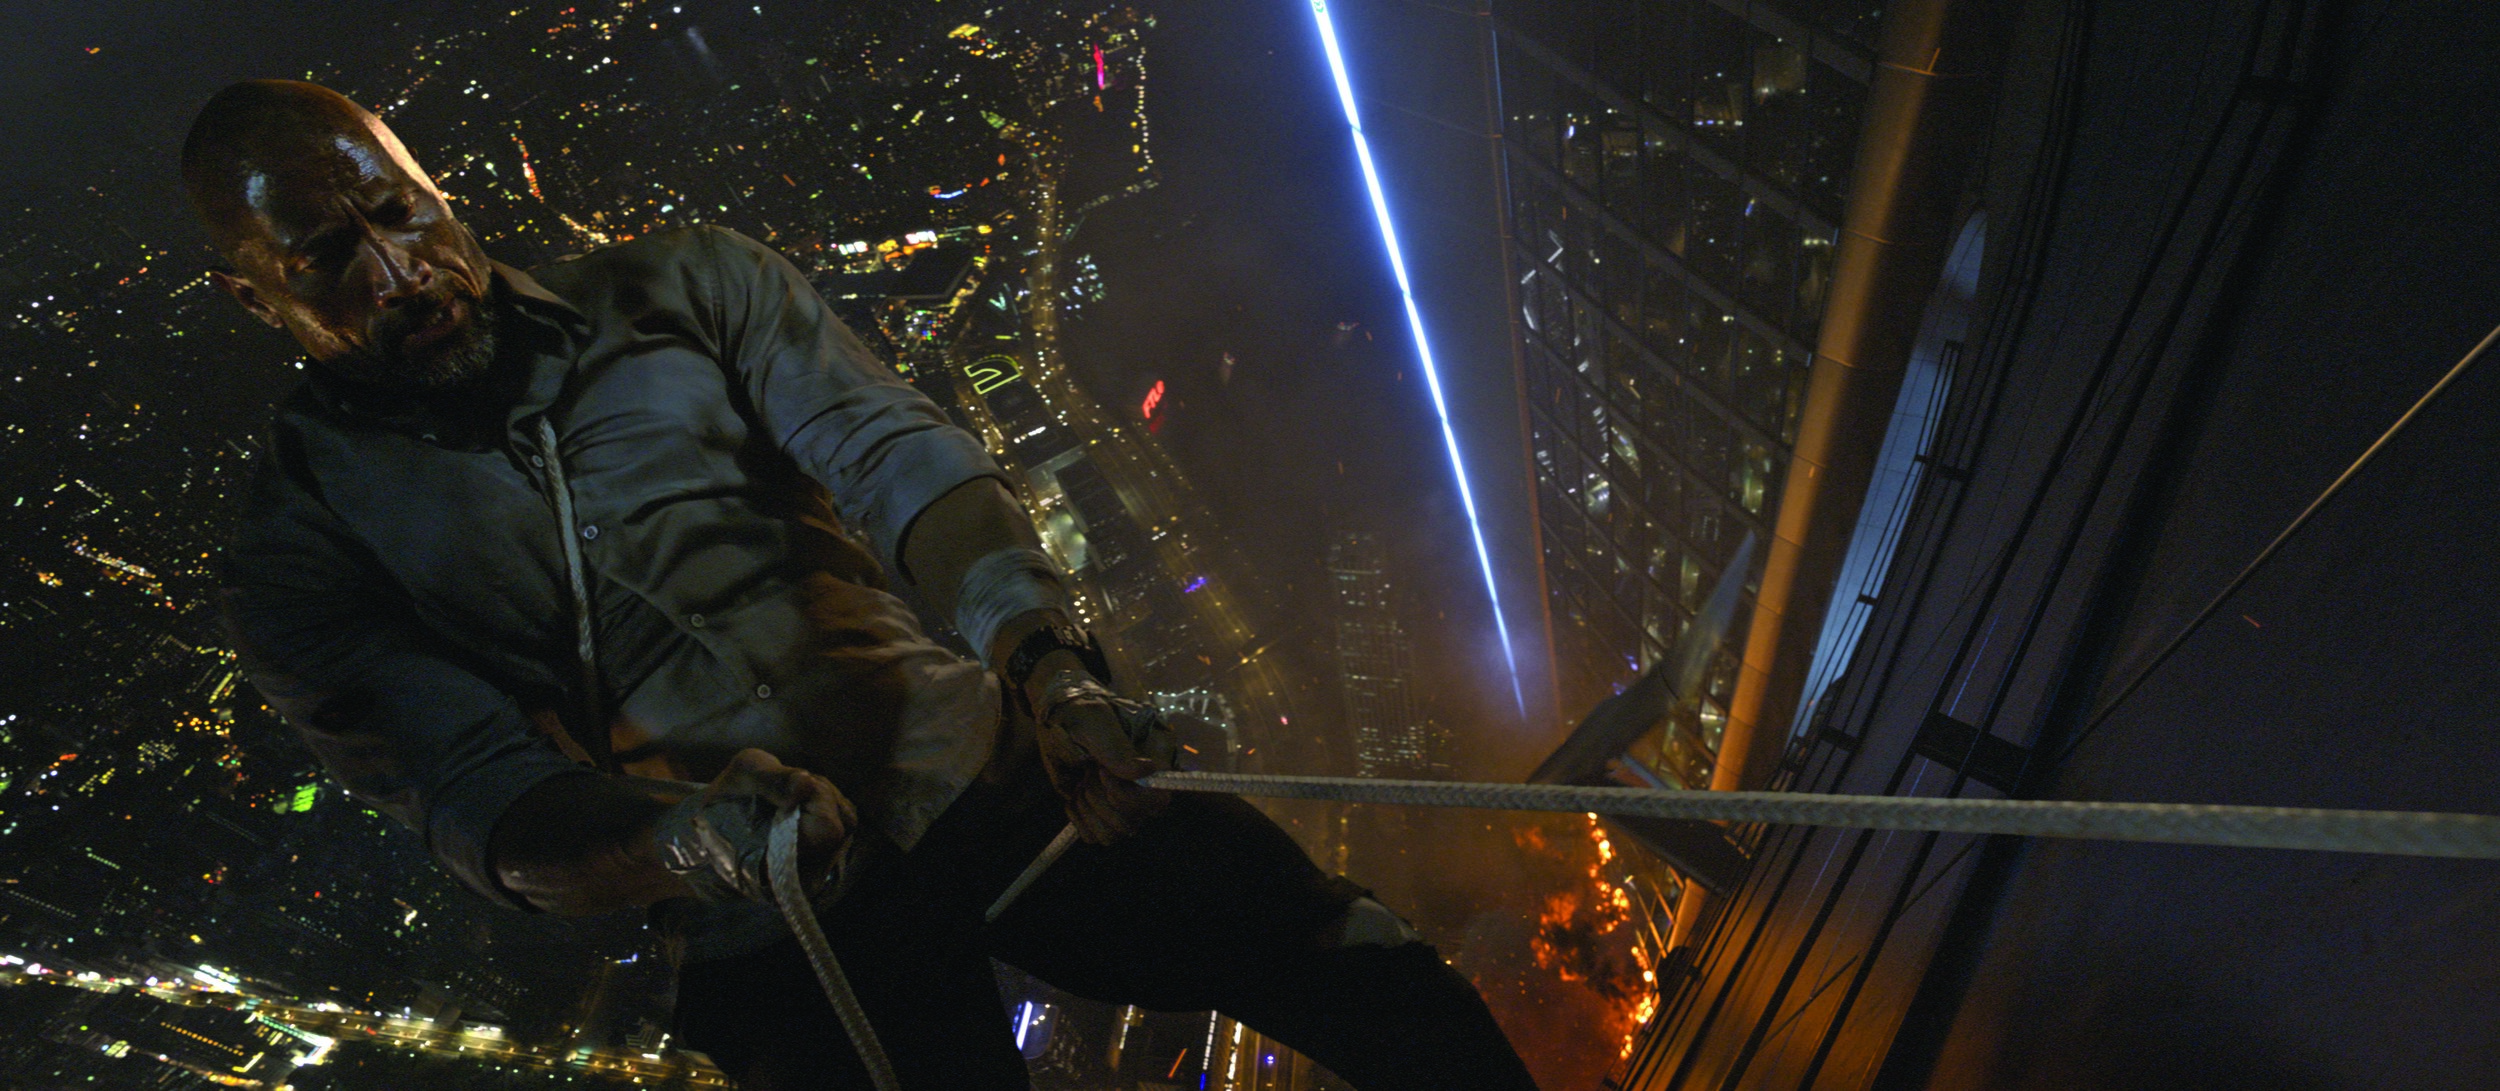 "Dwayne Johnson plays Will Sawyer, a security consultant who must risk his life to save his family from a burning Hong Kong high rise in ""Skyscraper."" (Photo courtesy Legendary Pictures / Universal Pictures)"